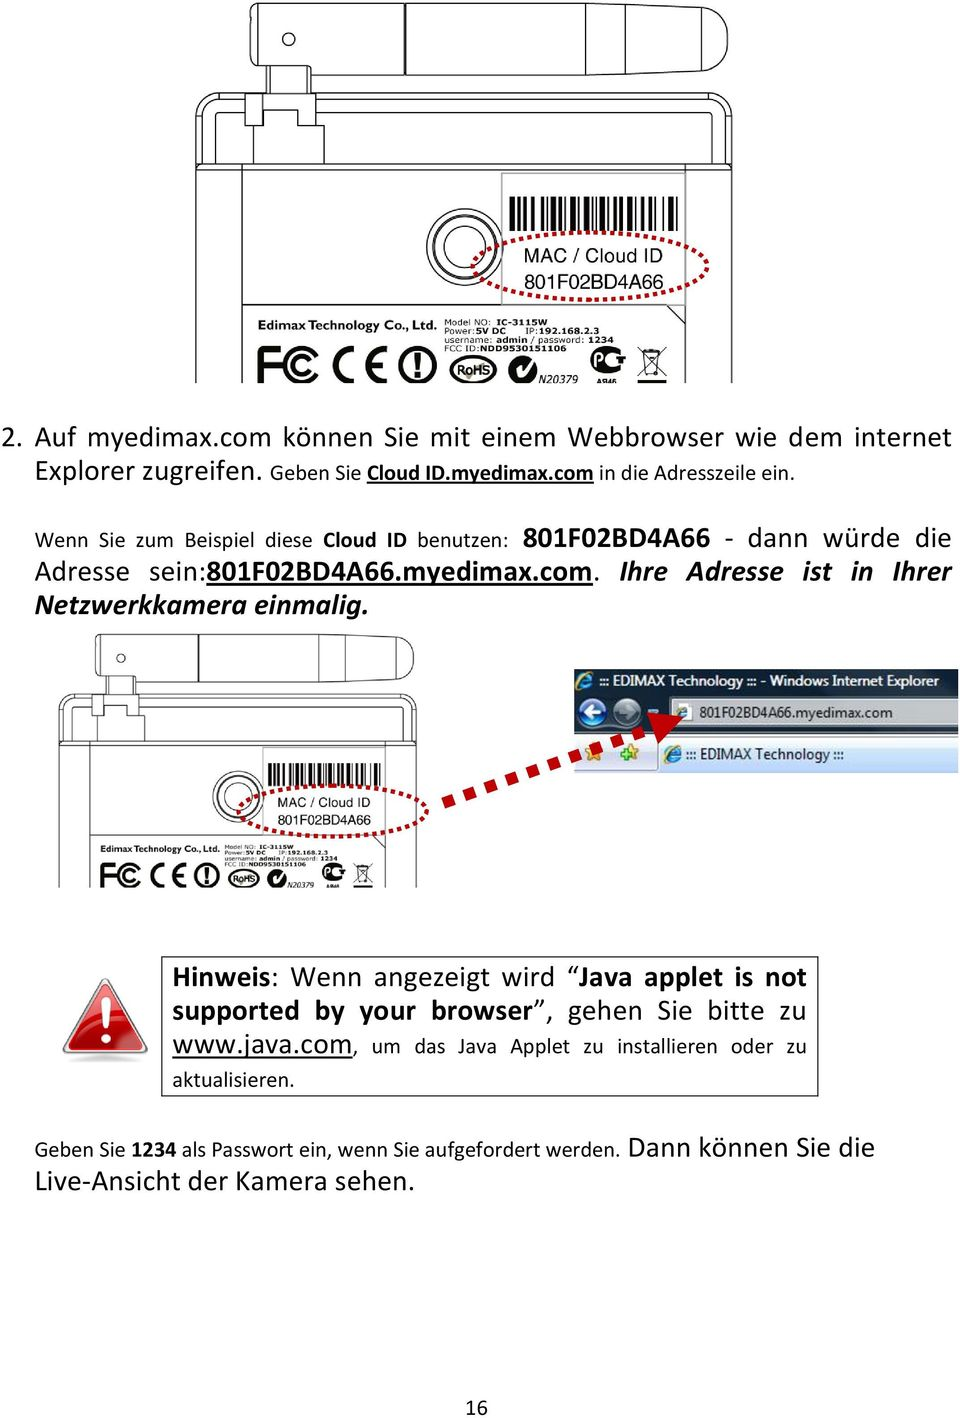 Ihre Adresse ist in Ihrer Netzwerkkamera einmalig. Hinweis: Wenn angezeigt wird Java applet is not supported by your browser, gehen Sie bitte zu www.